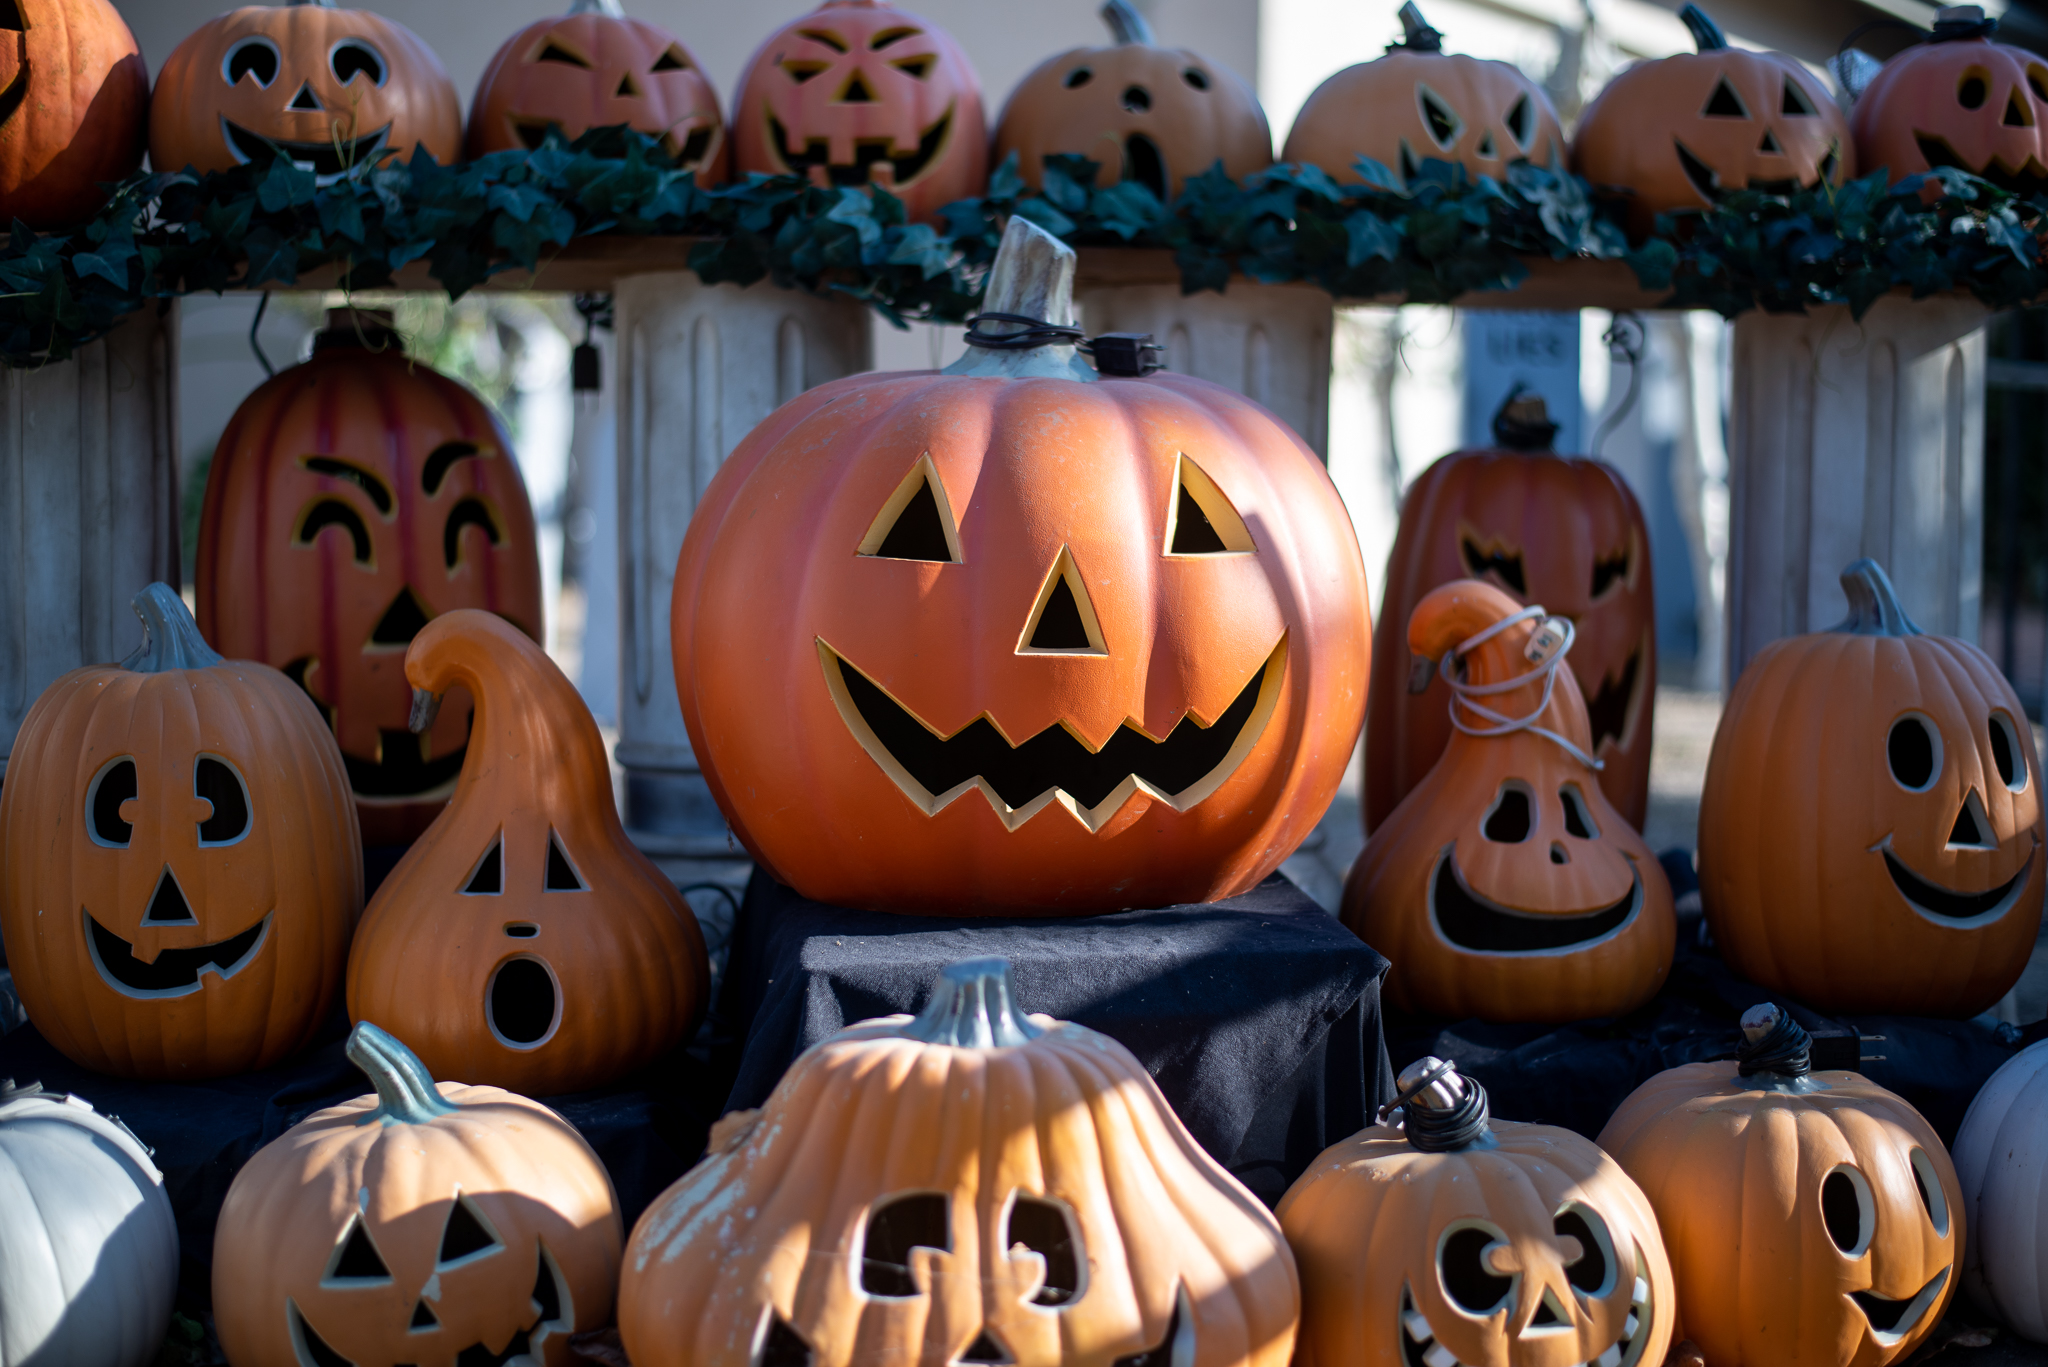 Streetbeat: What are your Halloween plans?